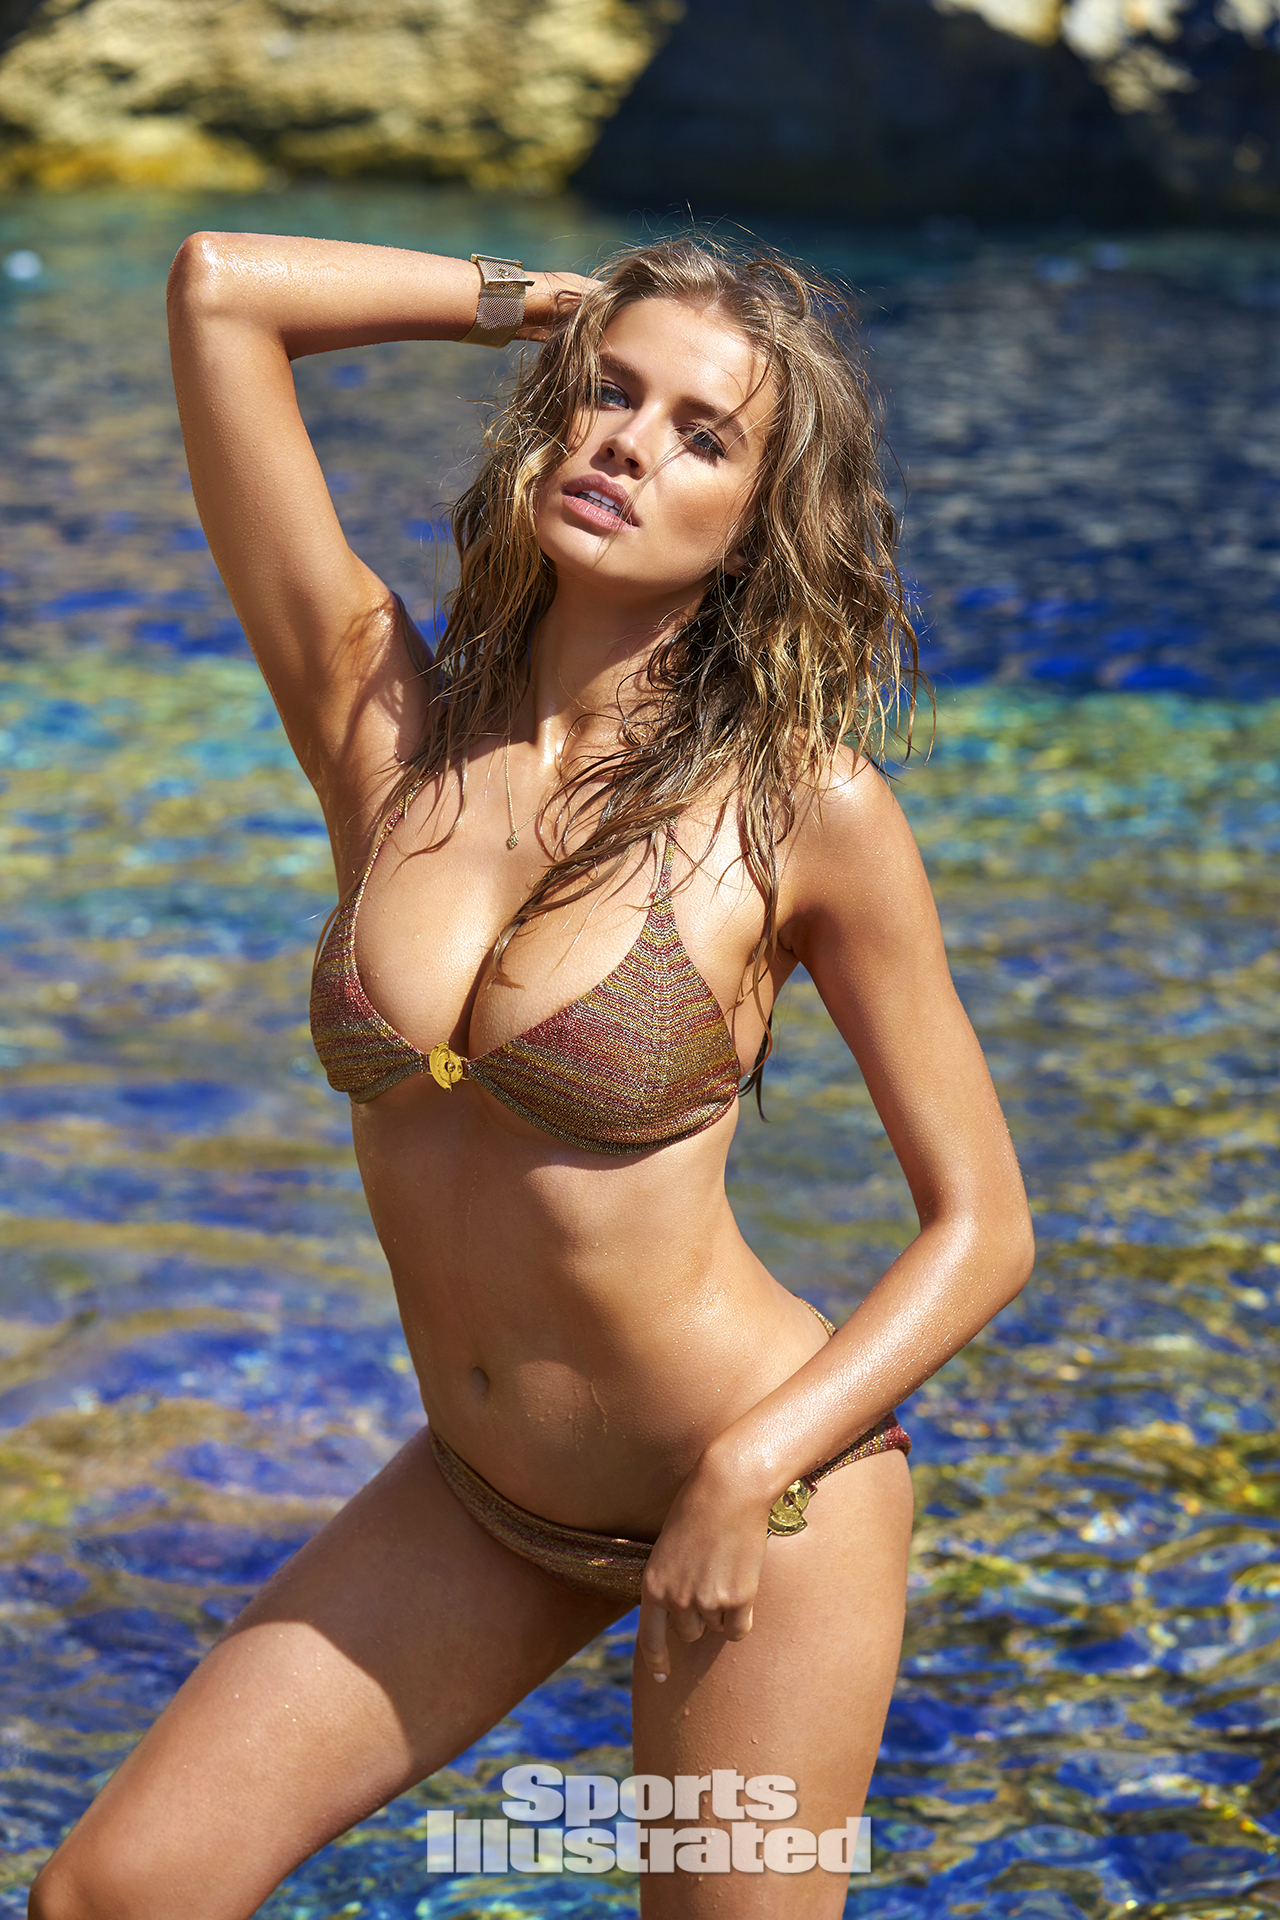 Tanya Mityushina was photographed by Ben Watts in Malta. Swimsuit by Elizabeth Kosich New York.